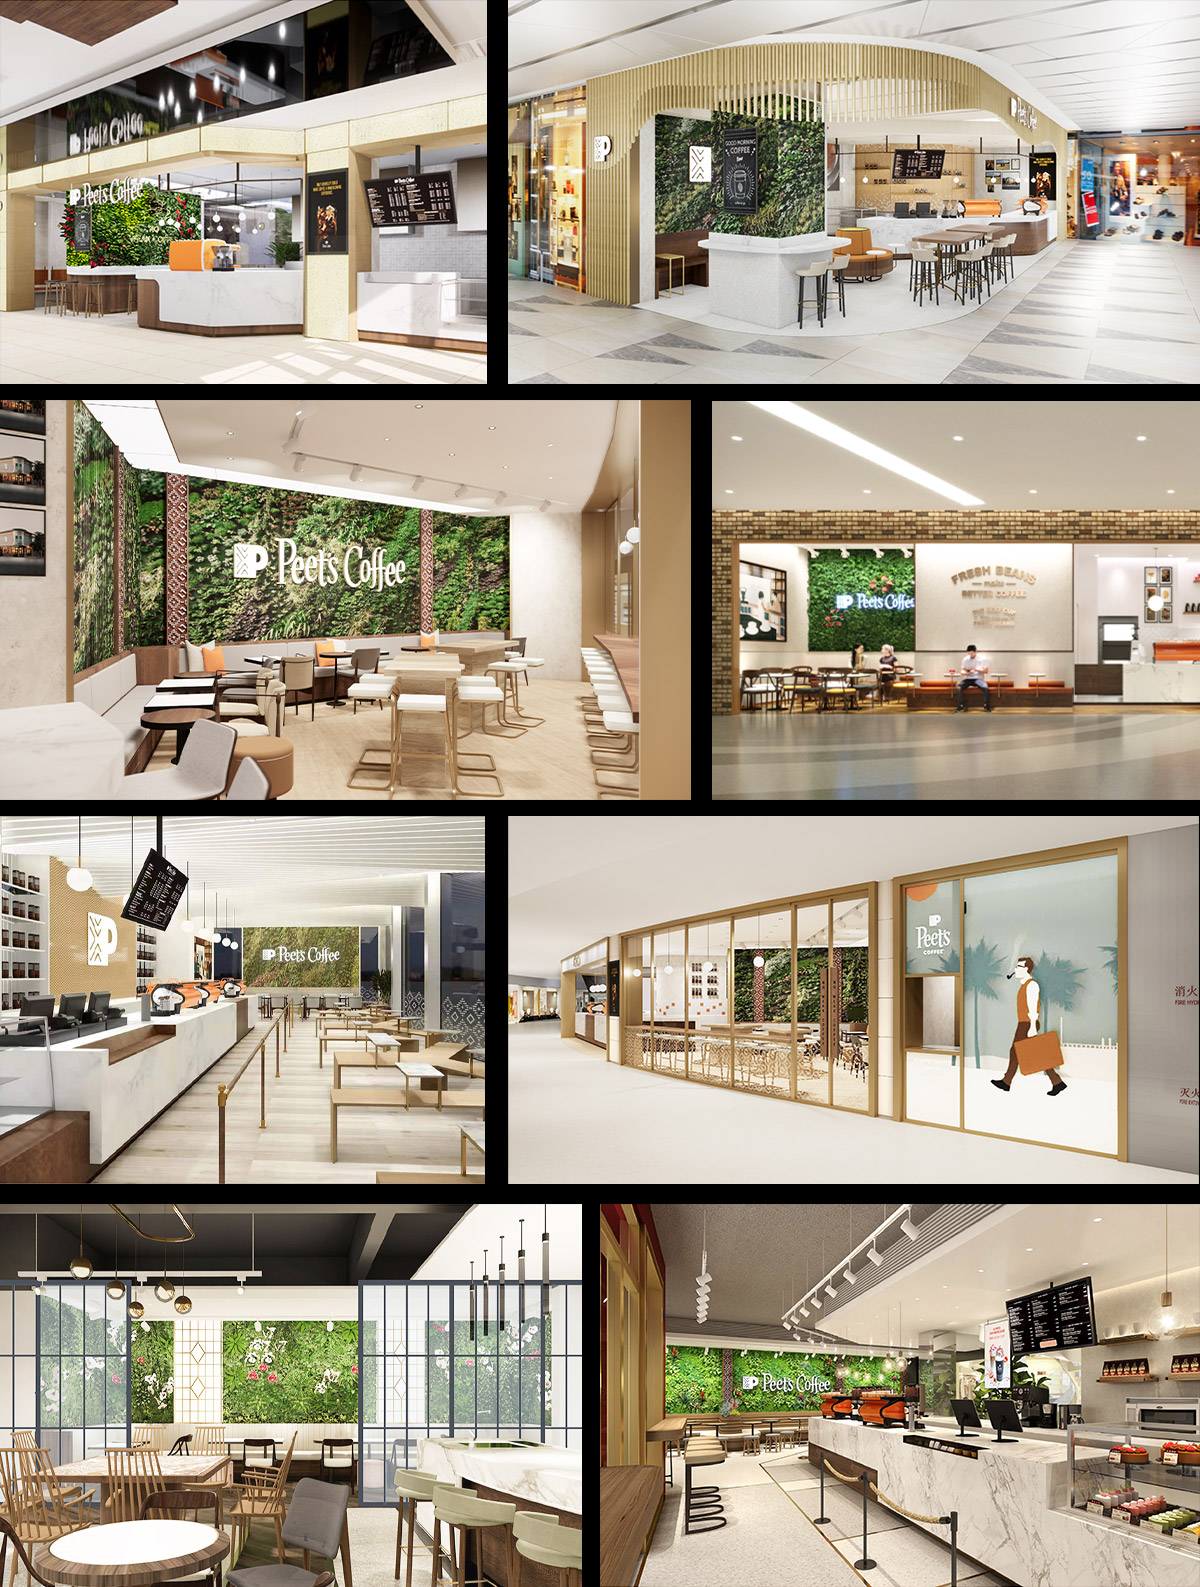 Mingzhu Nerval vertical living wall experts created a vertical living green wall for Peet's Coffee